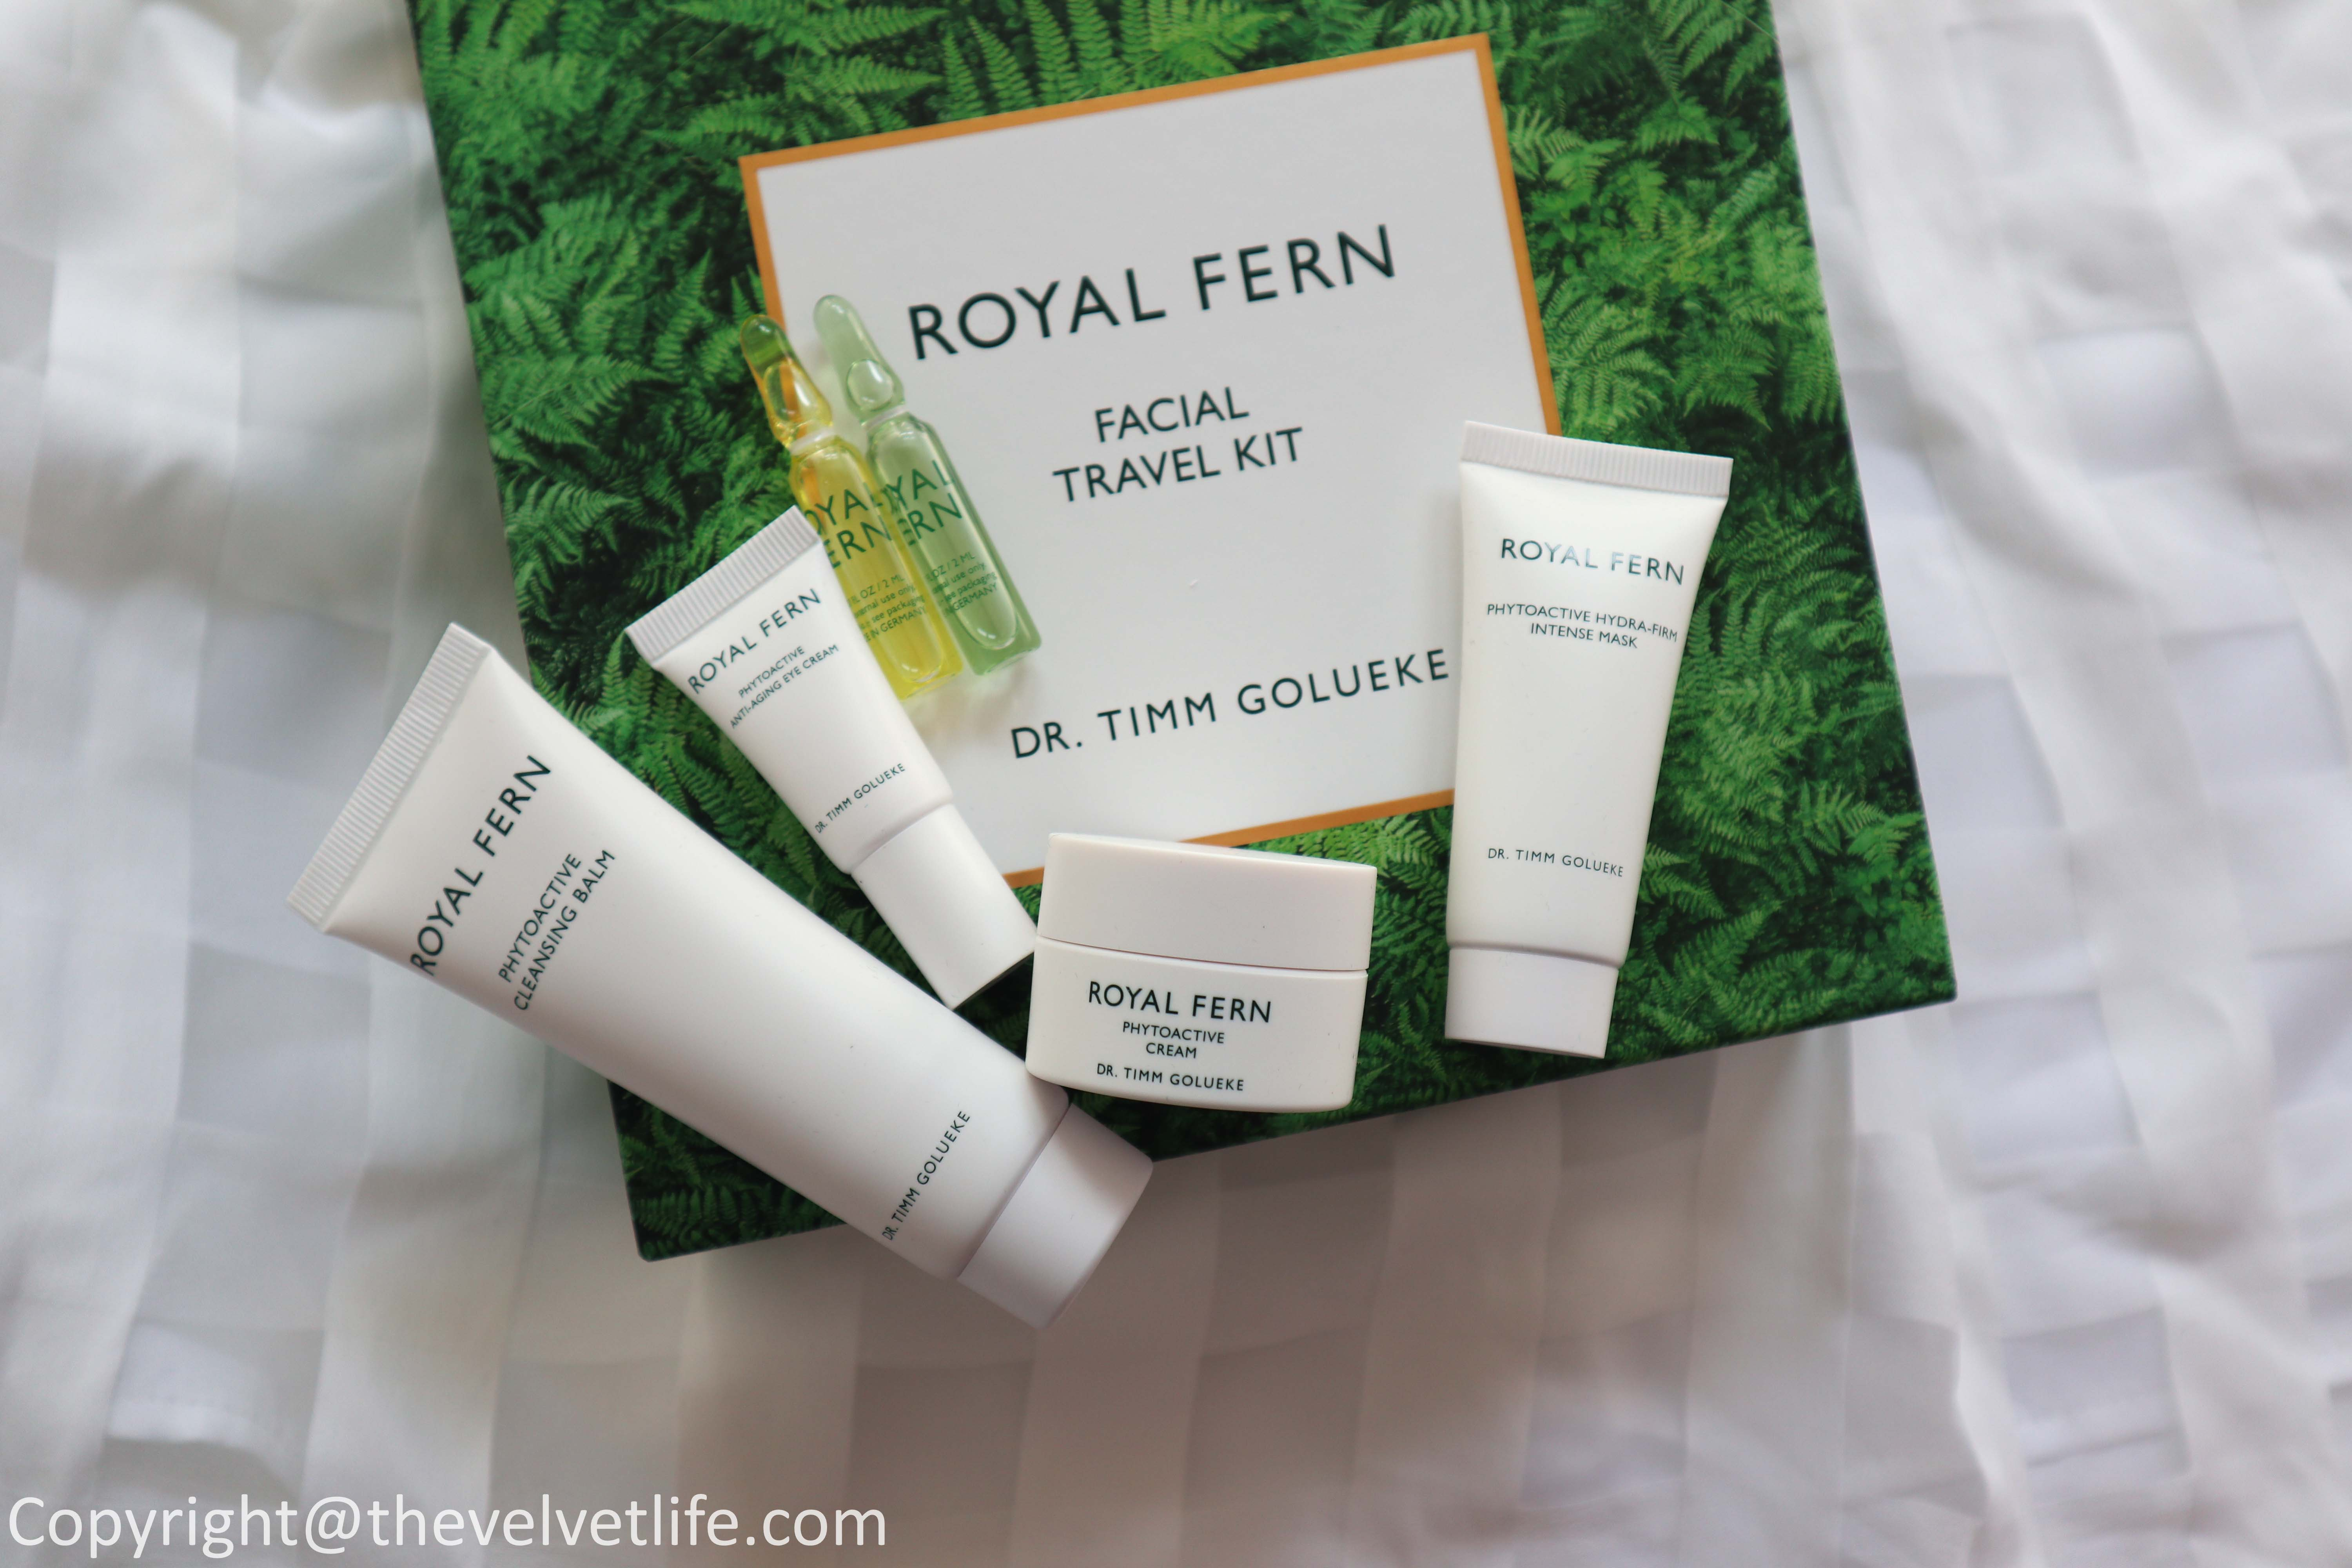 Review of the Royal Fern Facial Travel Kit which includes the Phytoactive cleansing balm, hydra-firm intense mask, anti-aging eye cream, ampoule